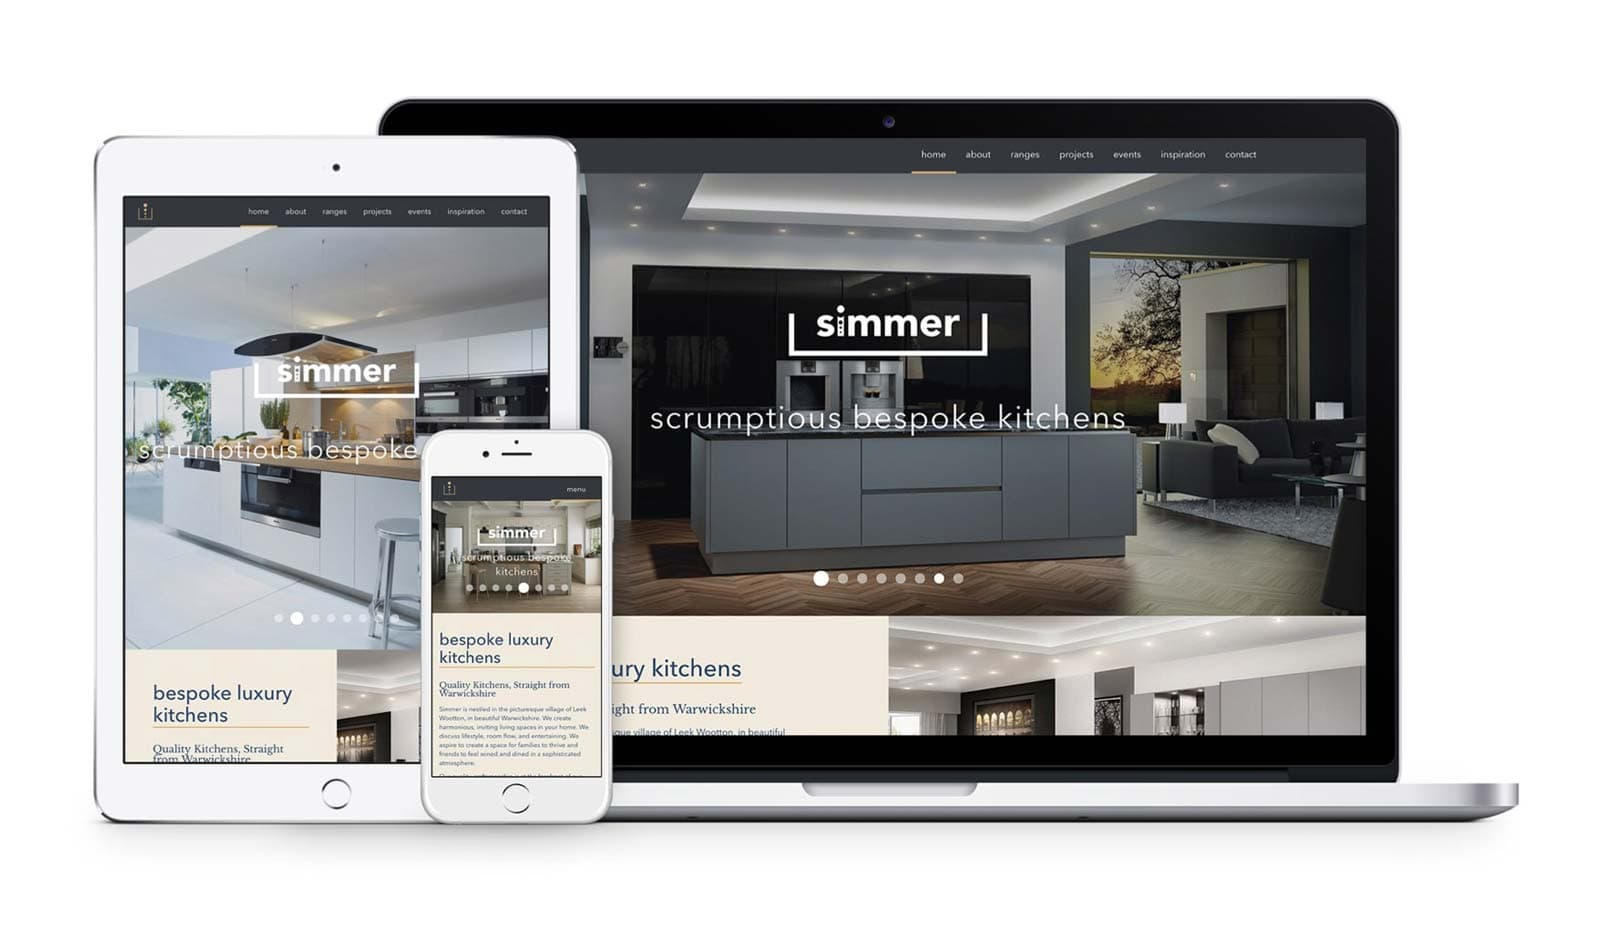 Simmer kitchens website showcased on different devices